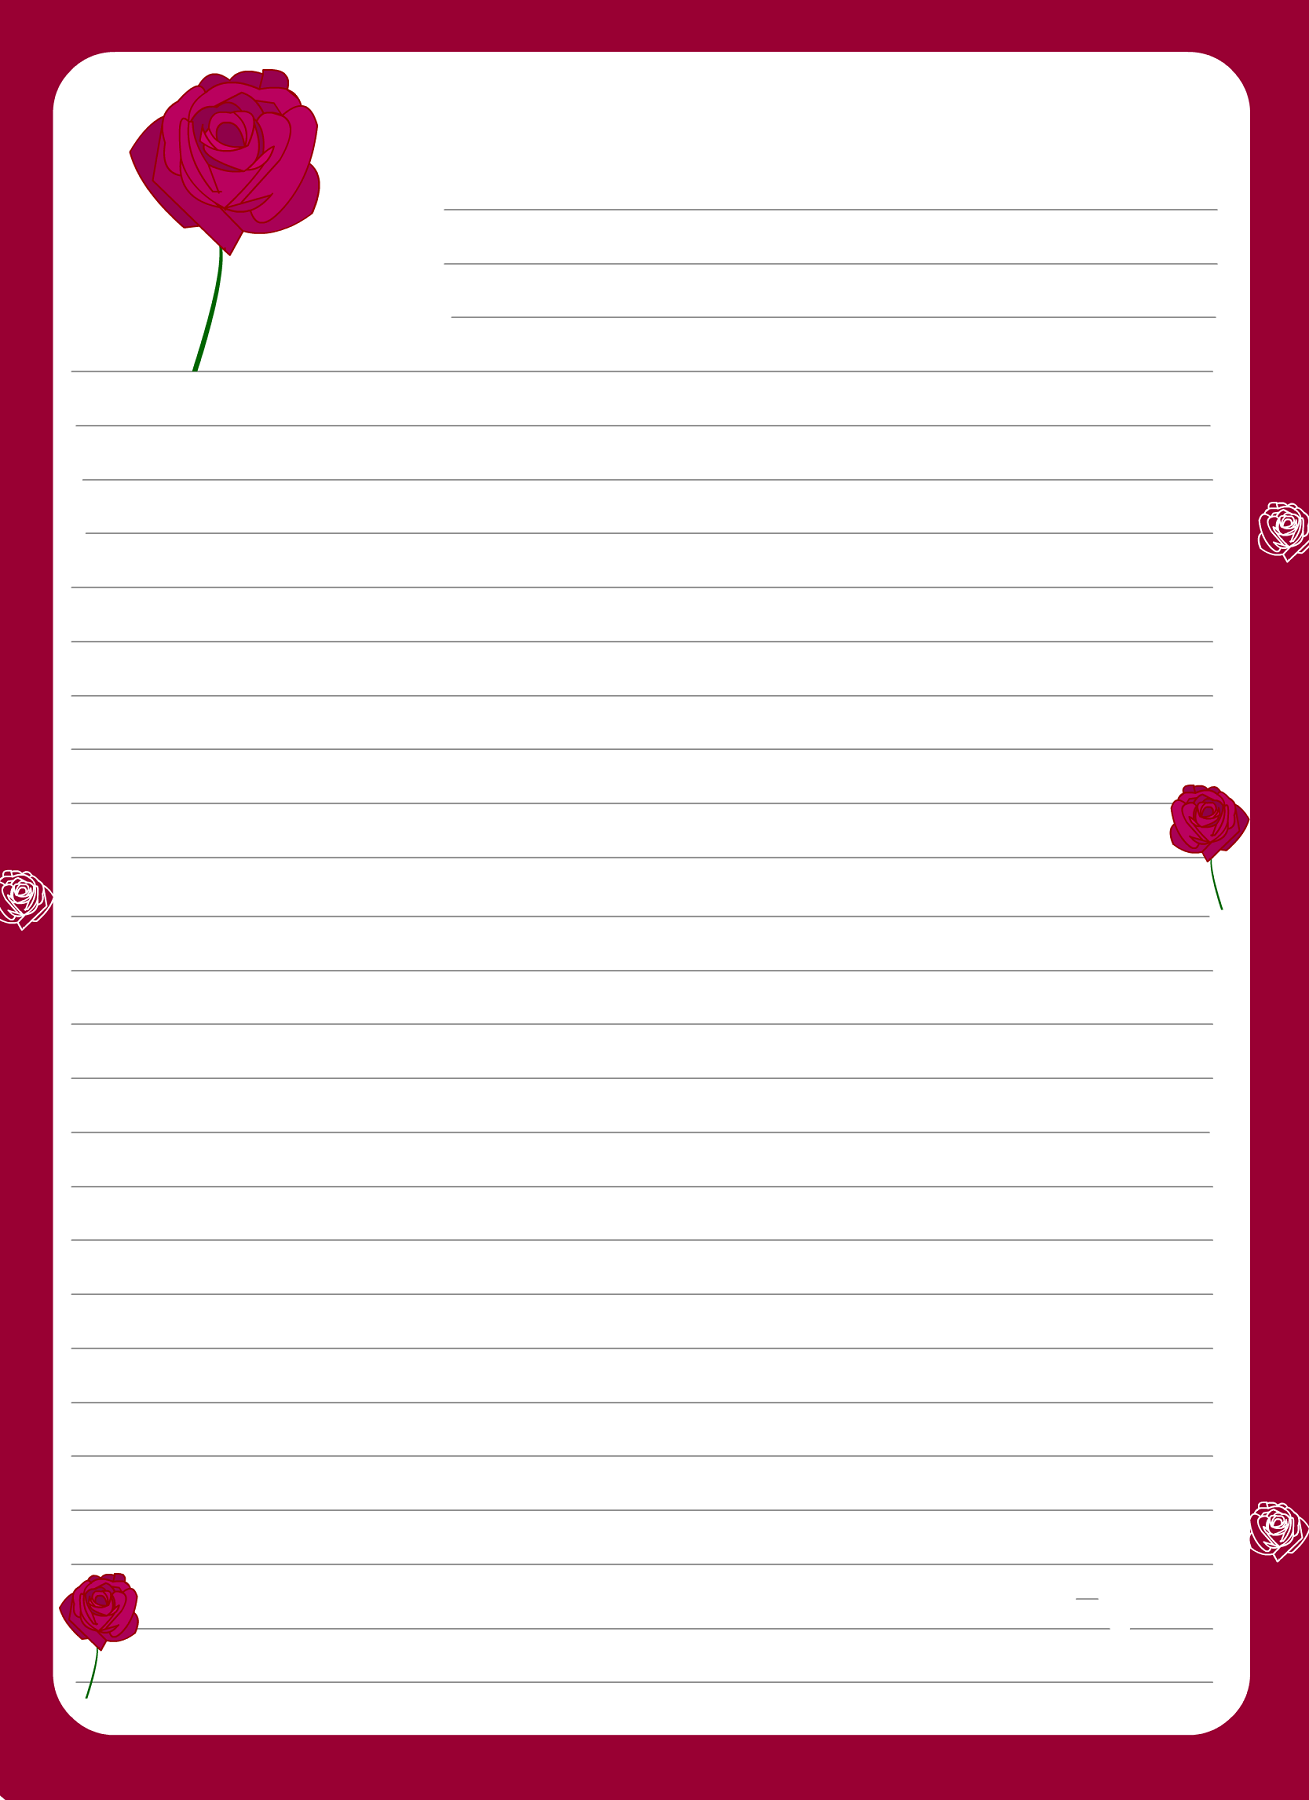 Lined Paper for Writing – Lined Paper for Writing